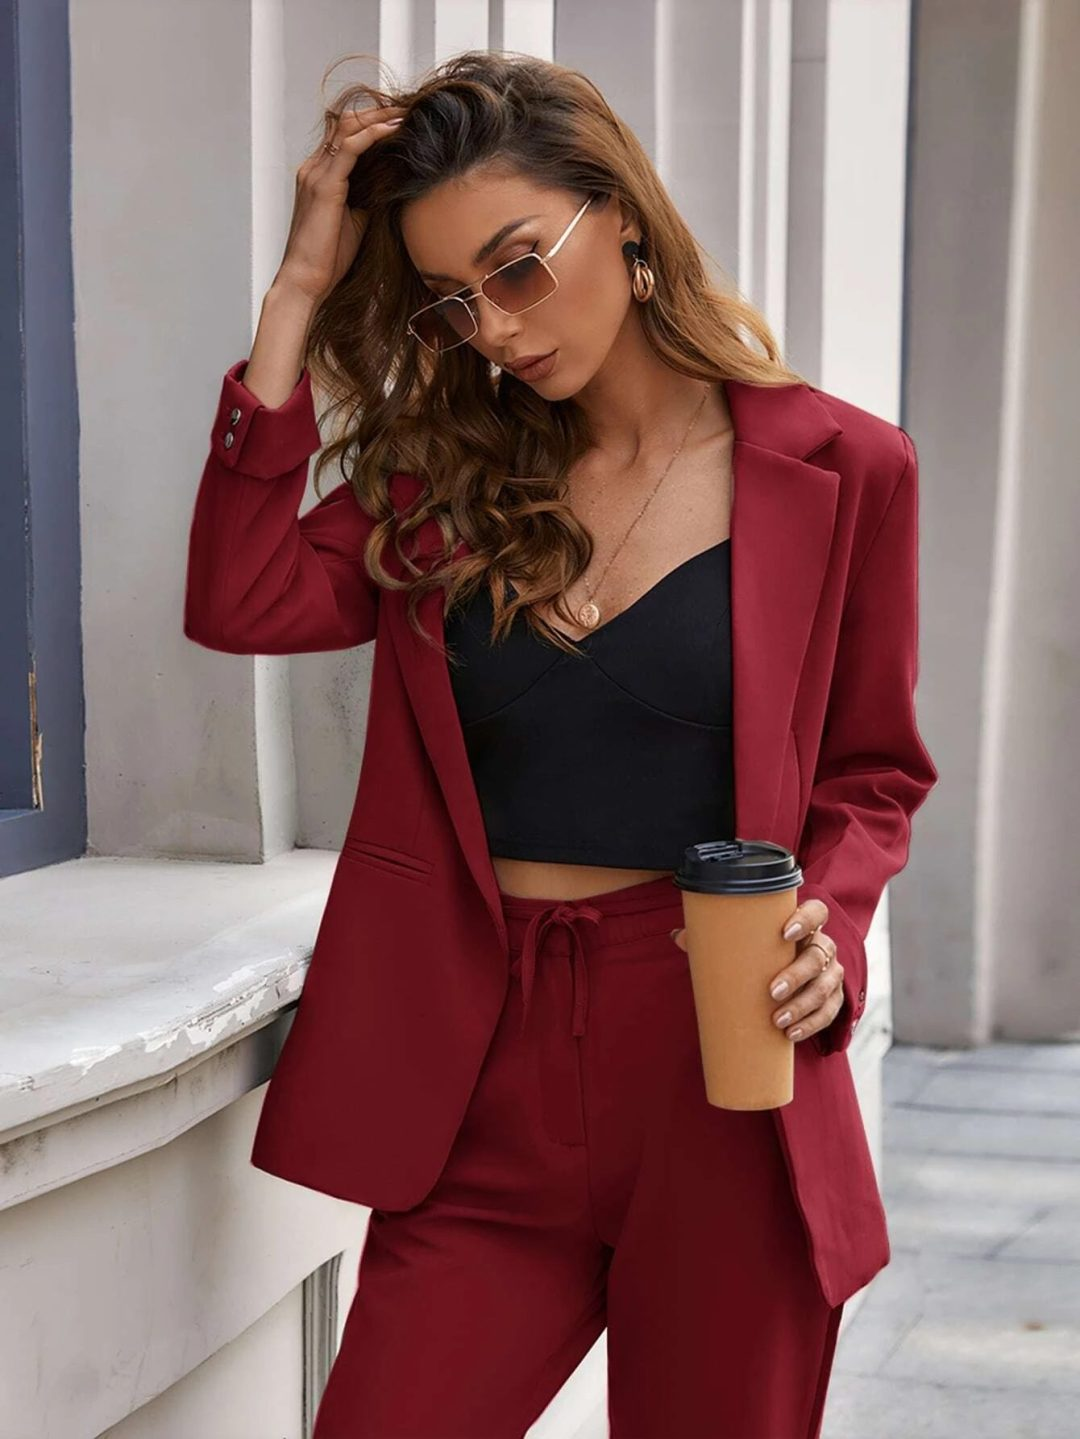 Red burgundy blazer and matching trousers